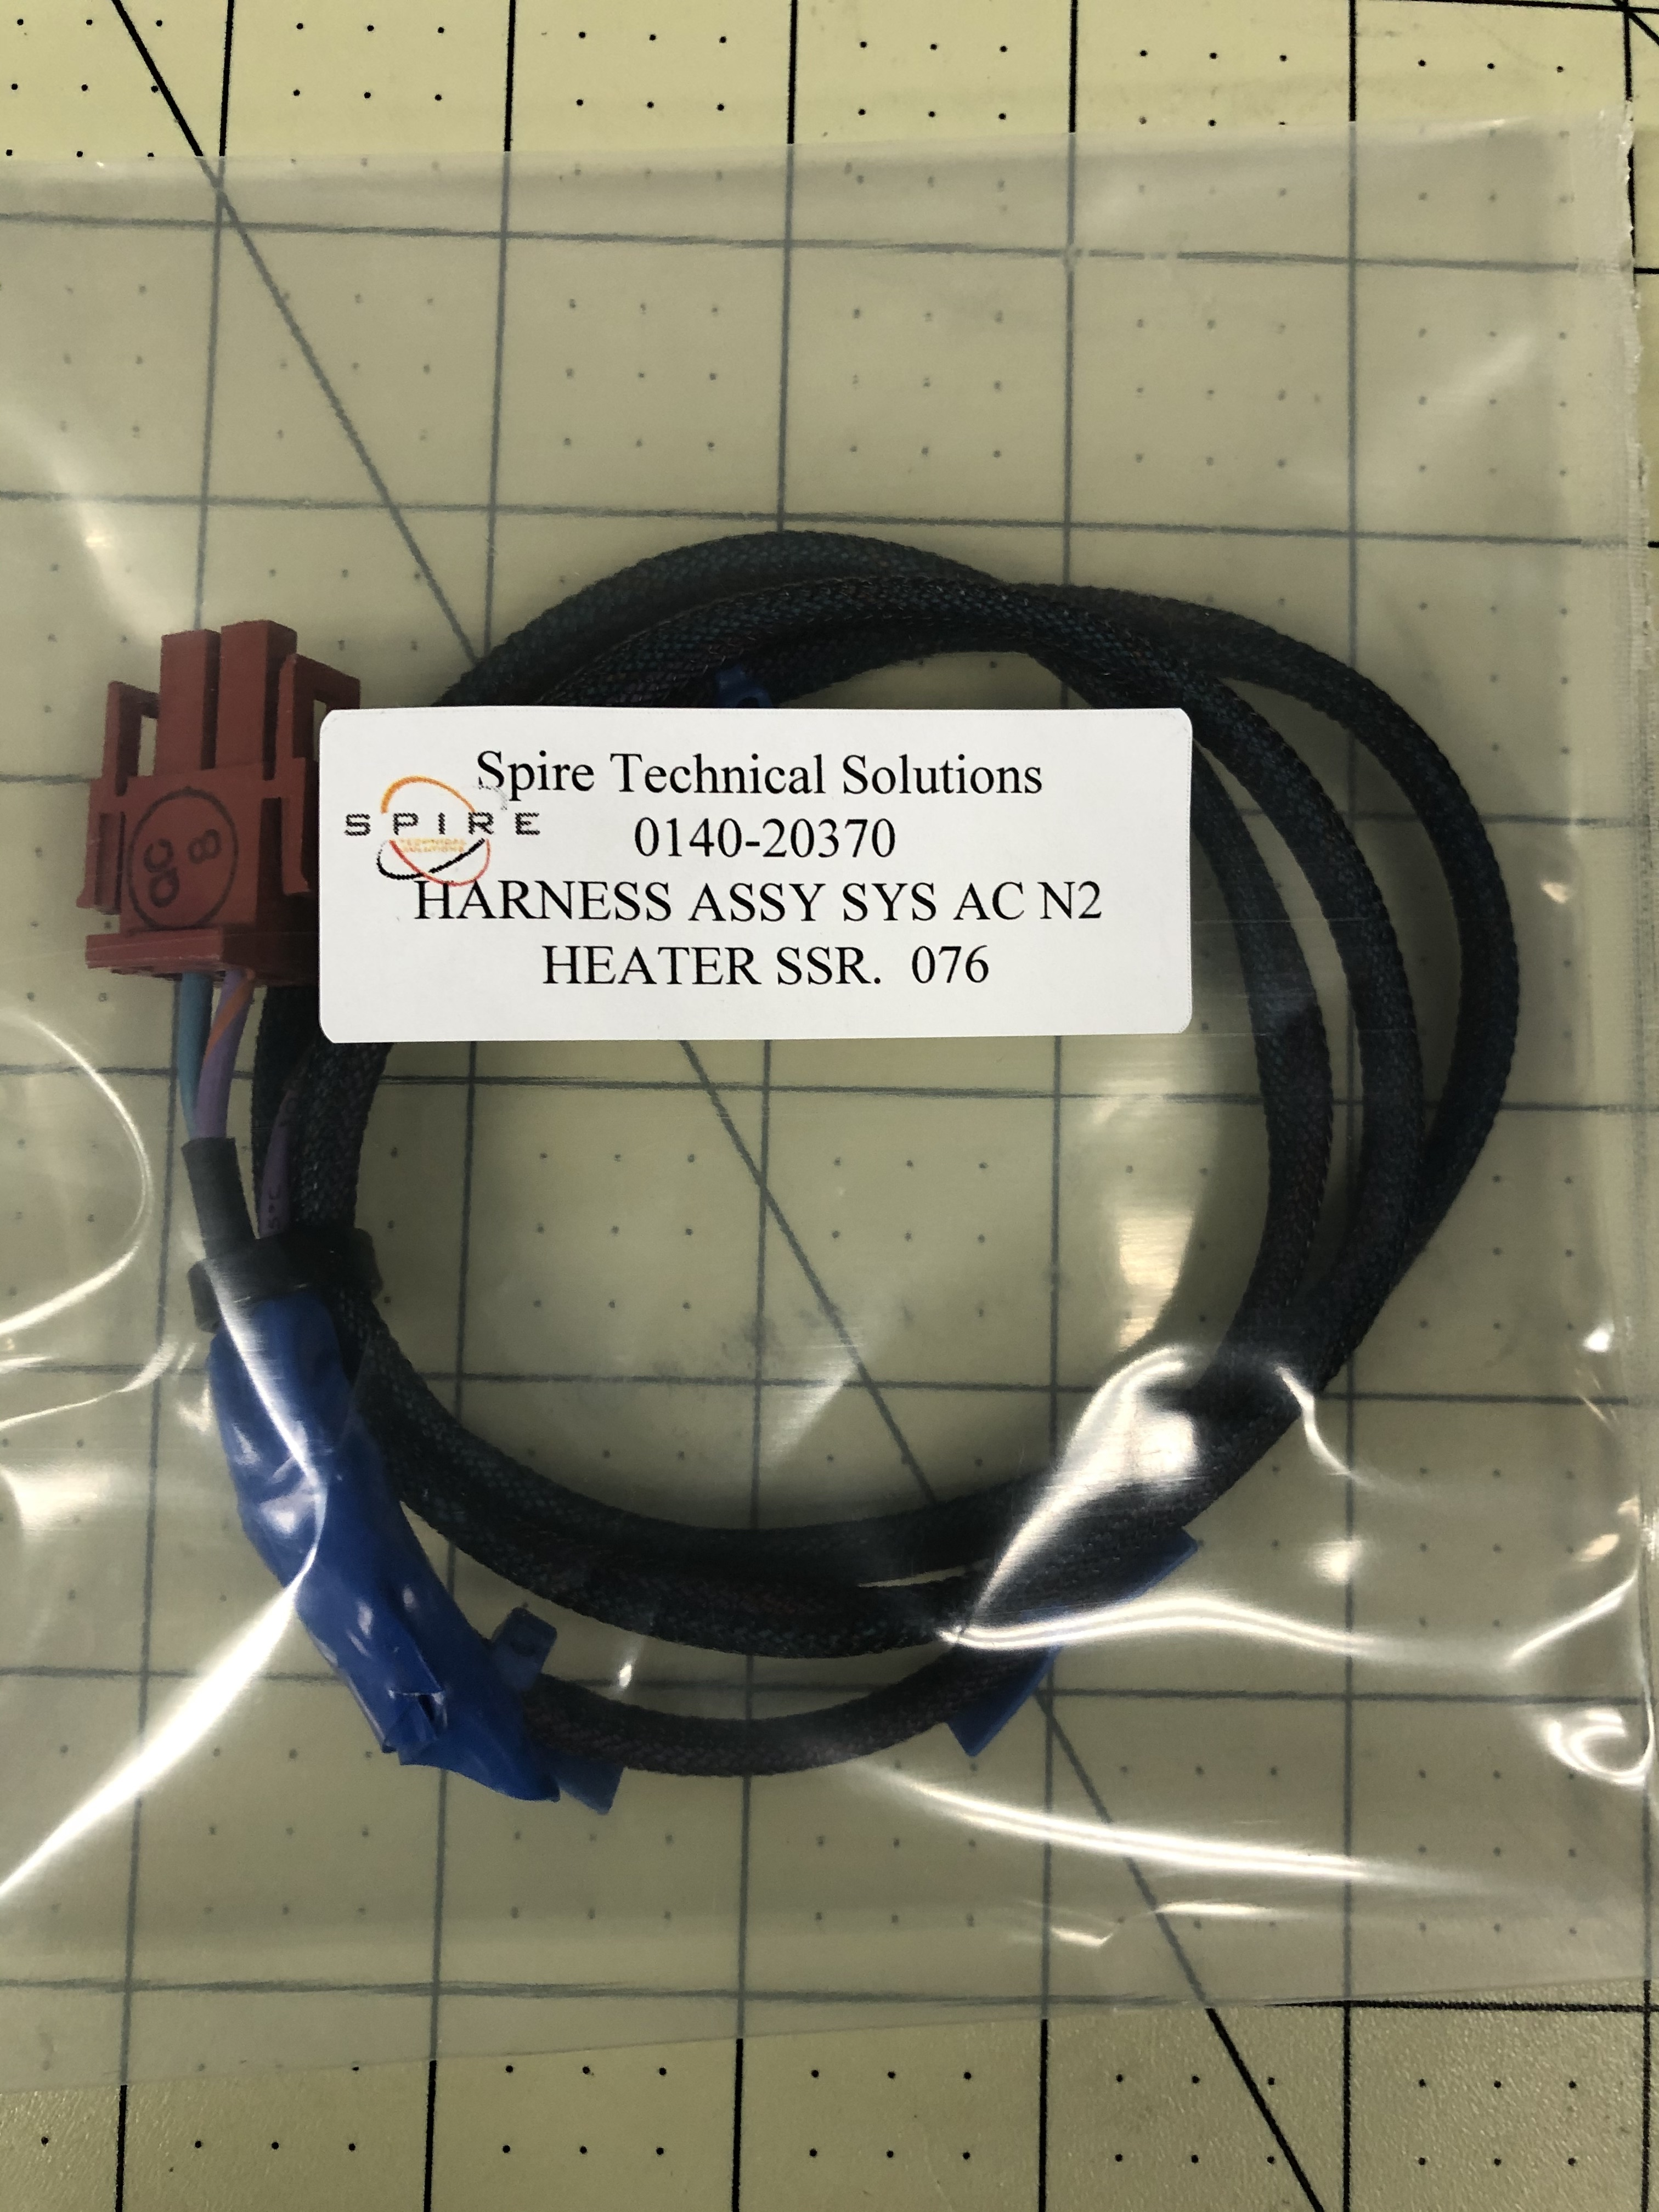 HARNESS ASSY SYS AC N2 HEATER SSR